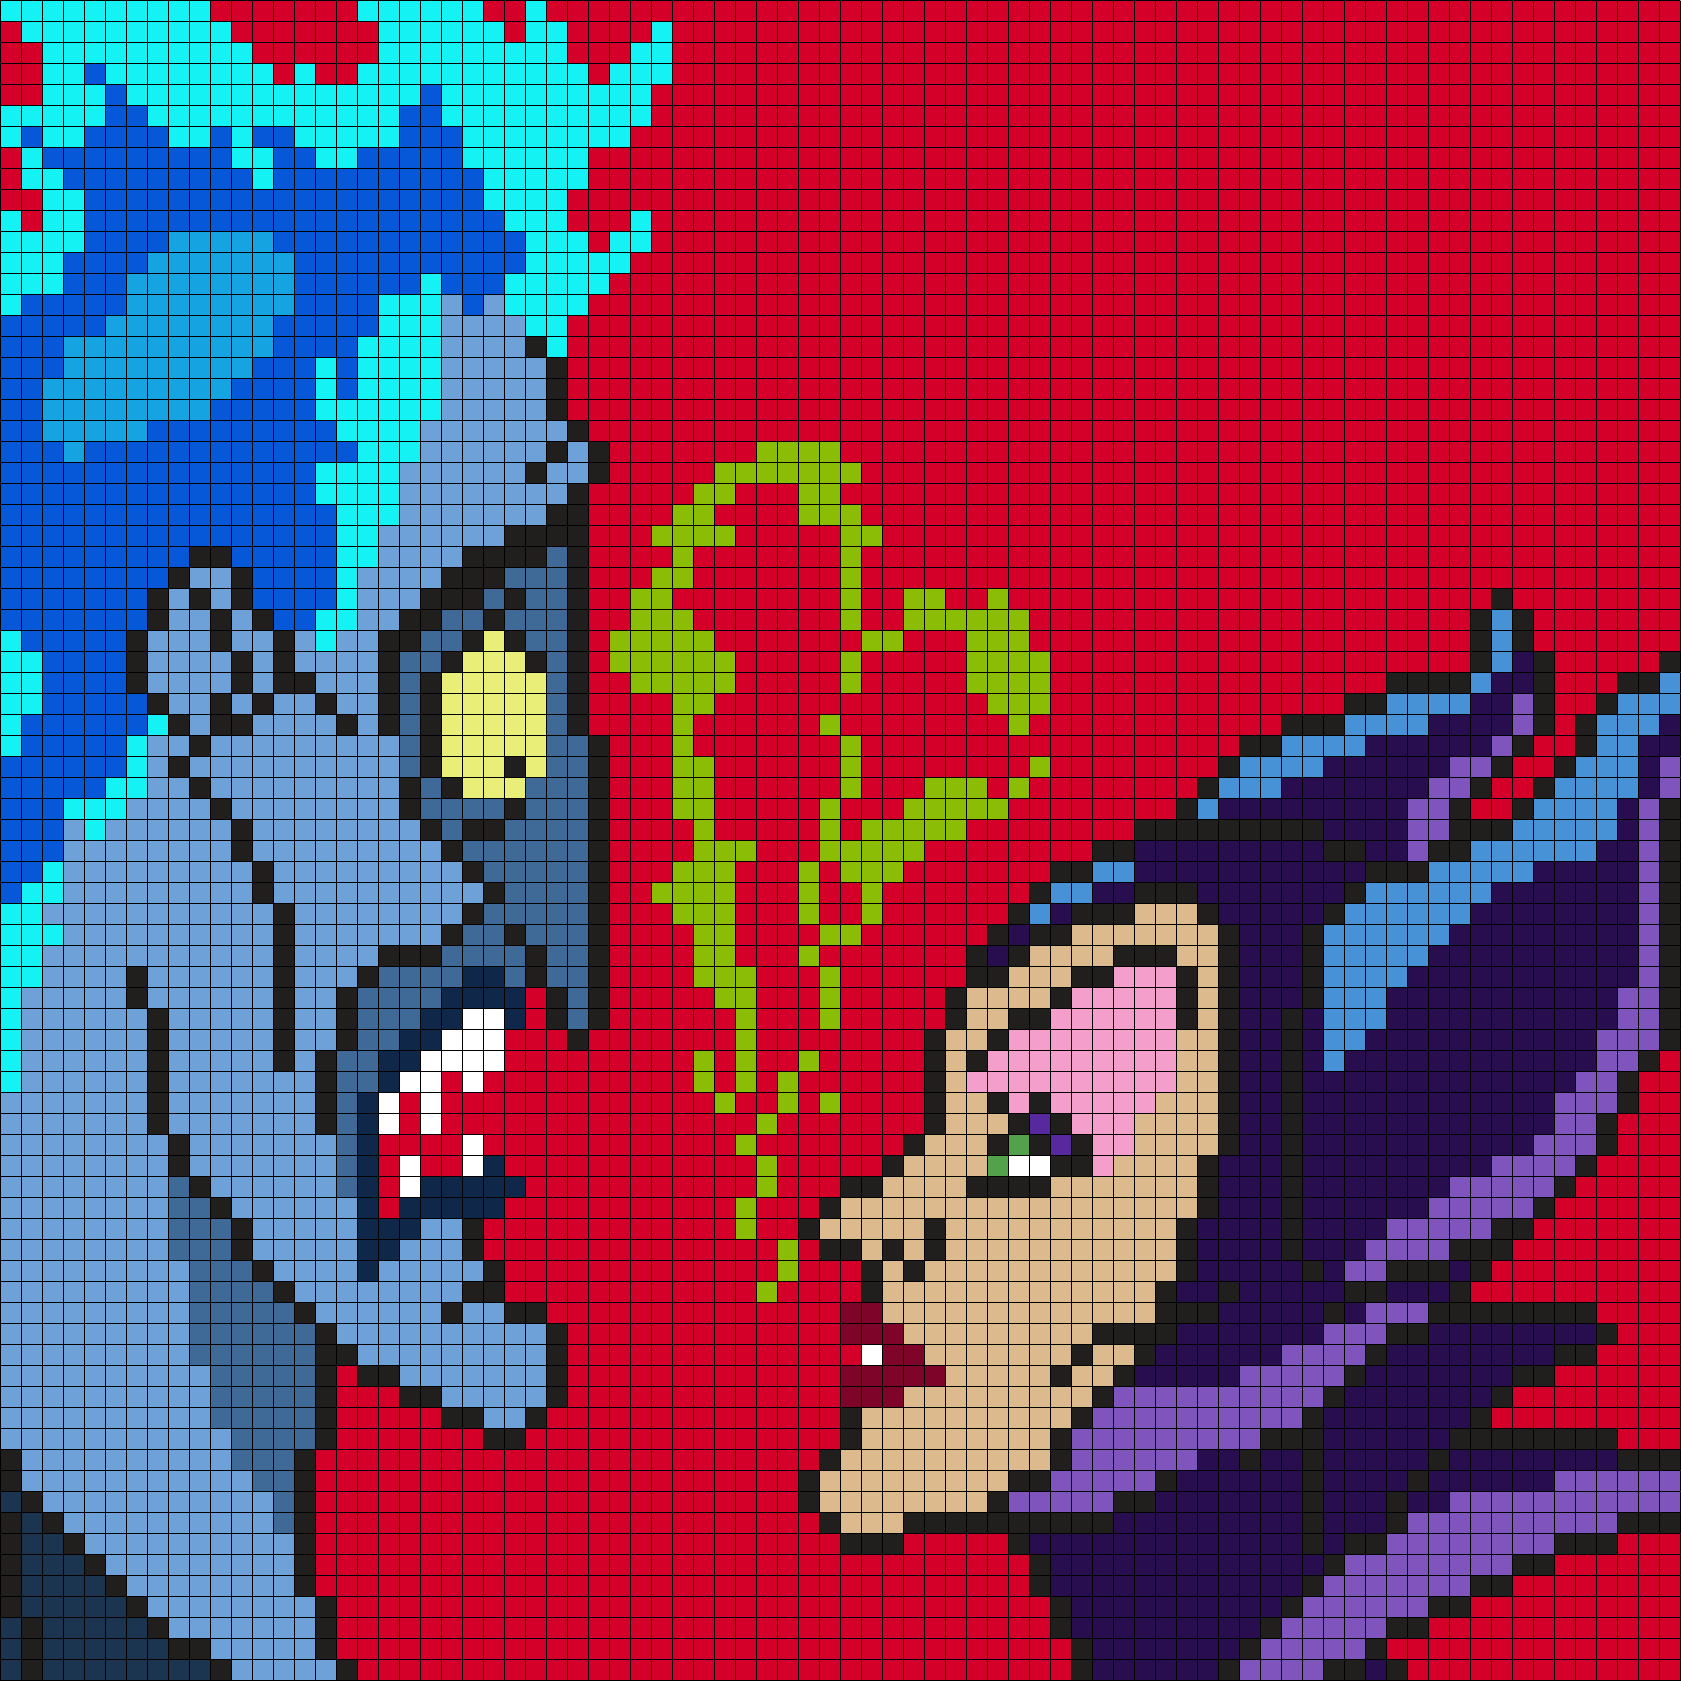 Hades And Maleficent (Square)